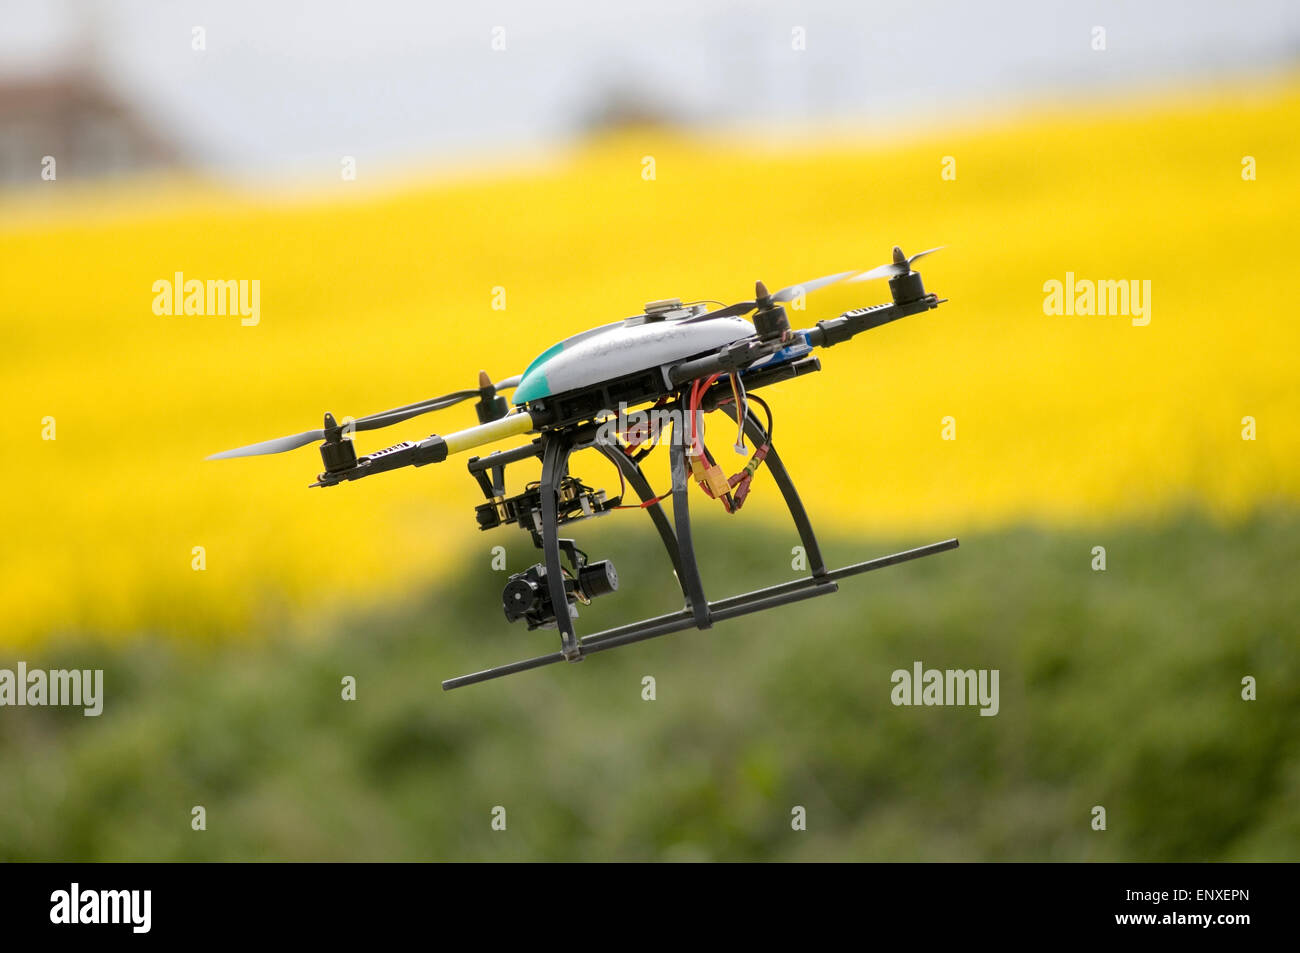 Drone drones camera video platform flying fly licensed operator photography photograph photographs videos privacy - Stock Image